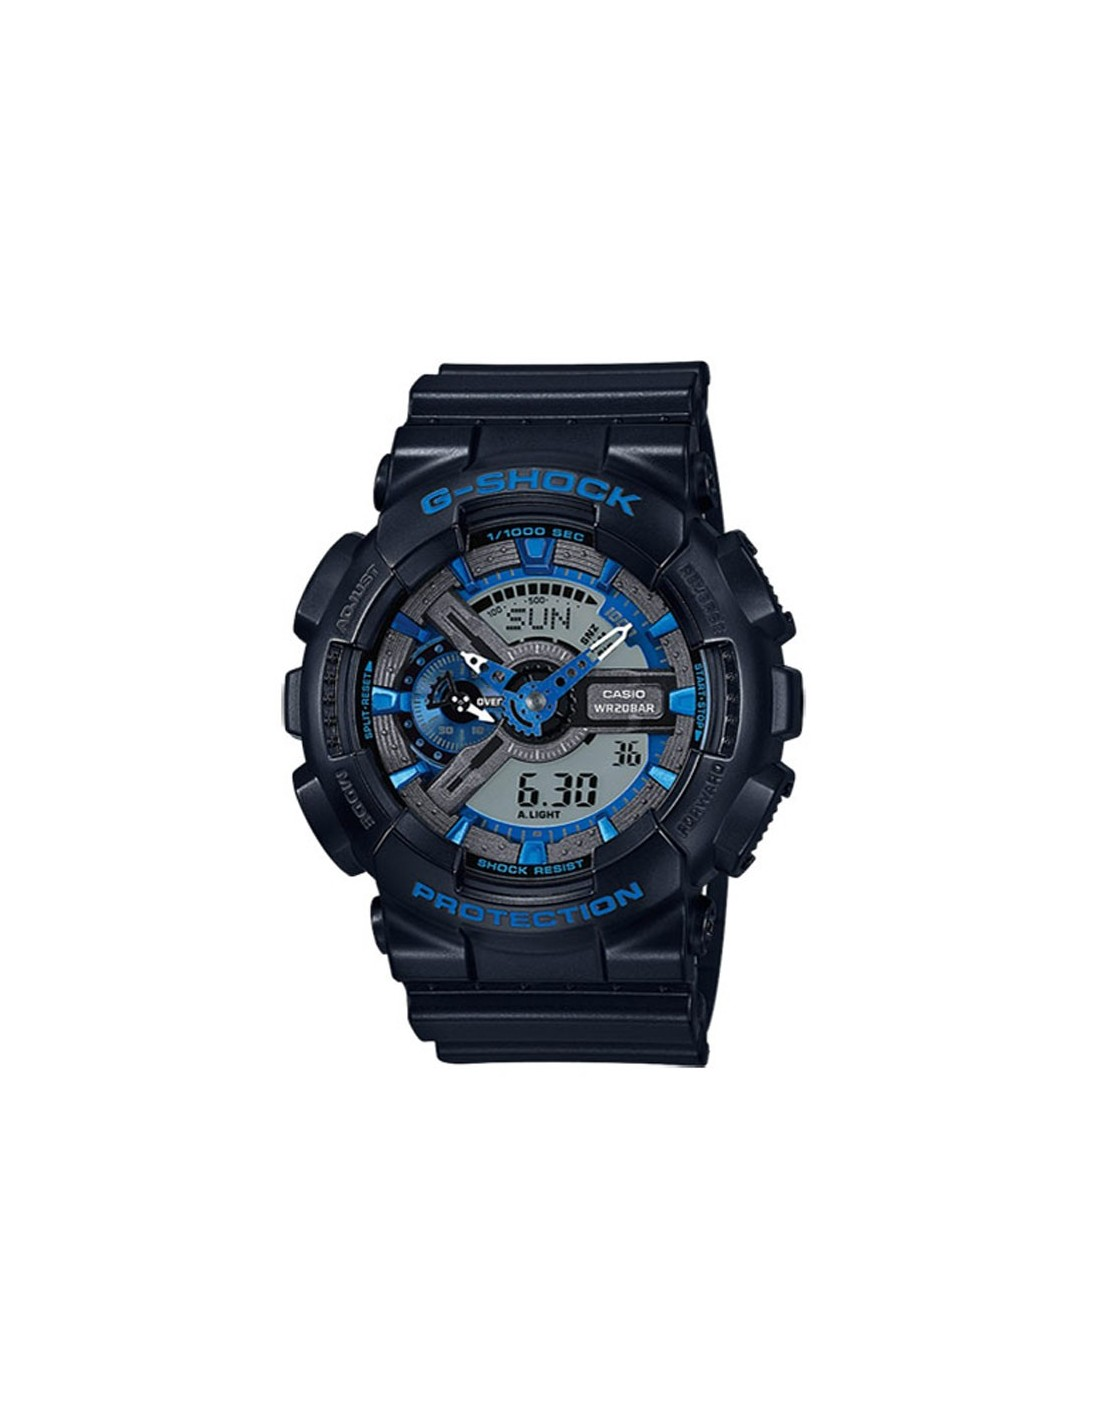 montre casio g shock ga 110cb 1aer montres casio. Black Bedroom Furniture Sets. Home Design Ideas